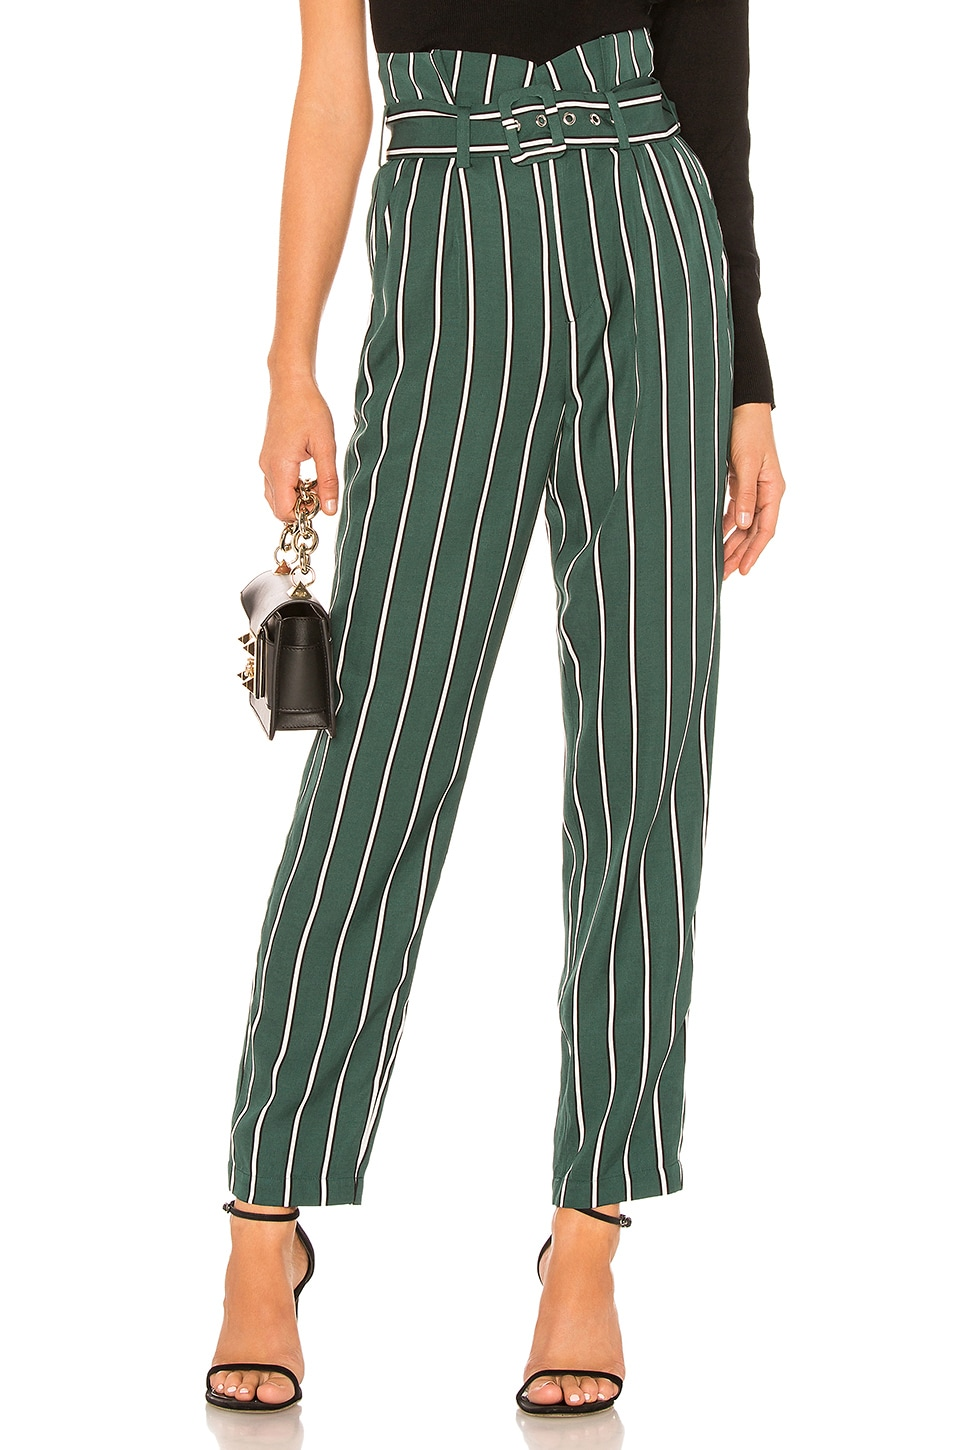 L'Academie The Carla Pant in Kelly Green Stripe